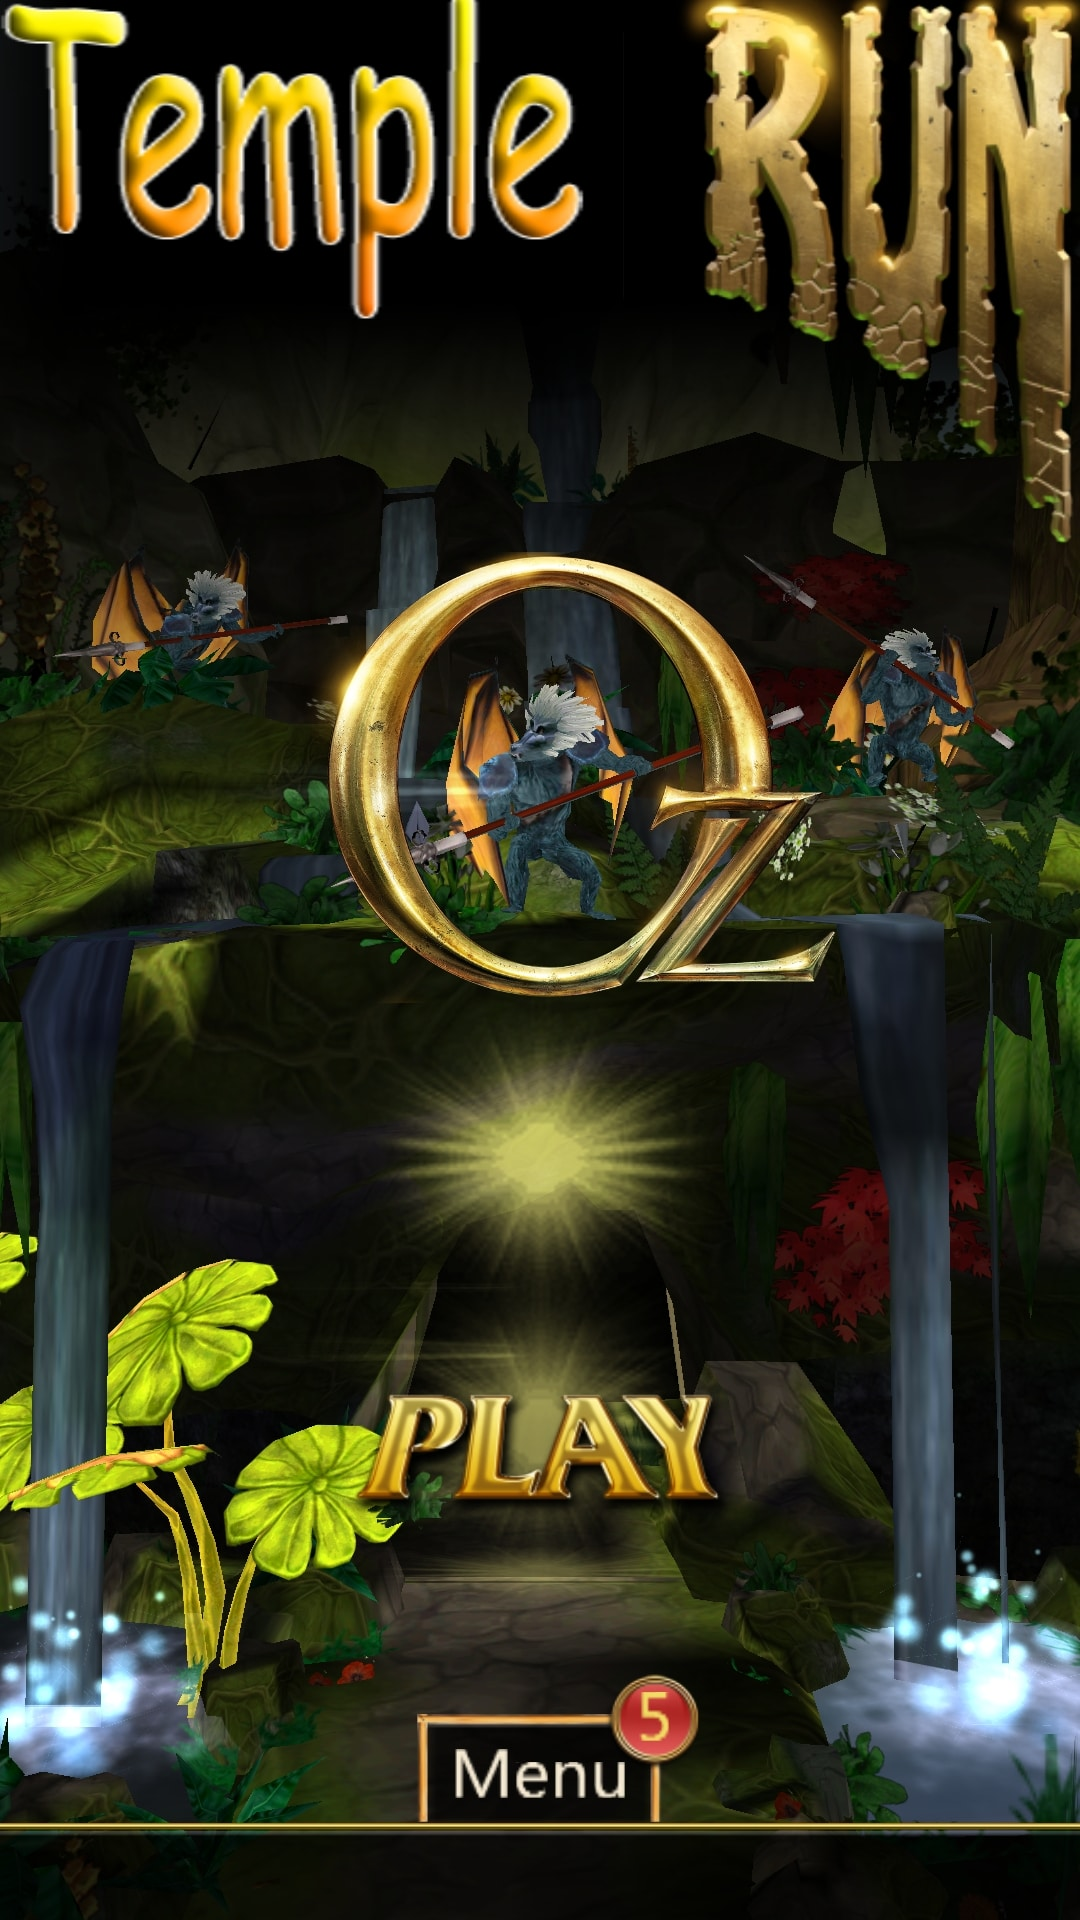 Download Endless Run Lost Oz APK - For Android 14